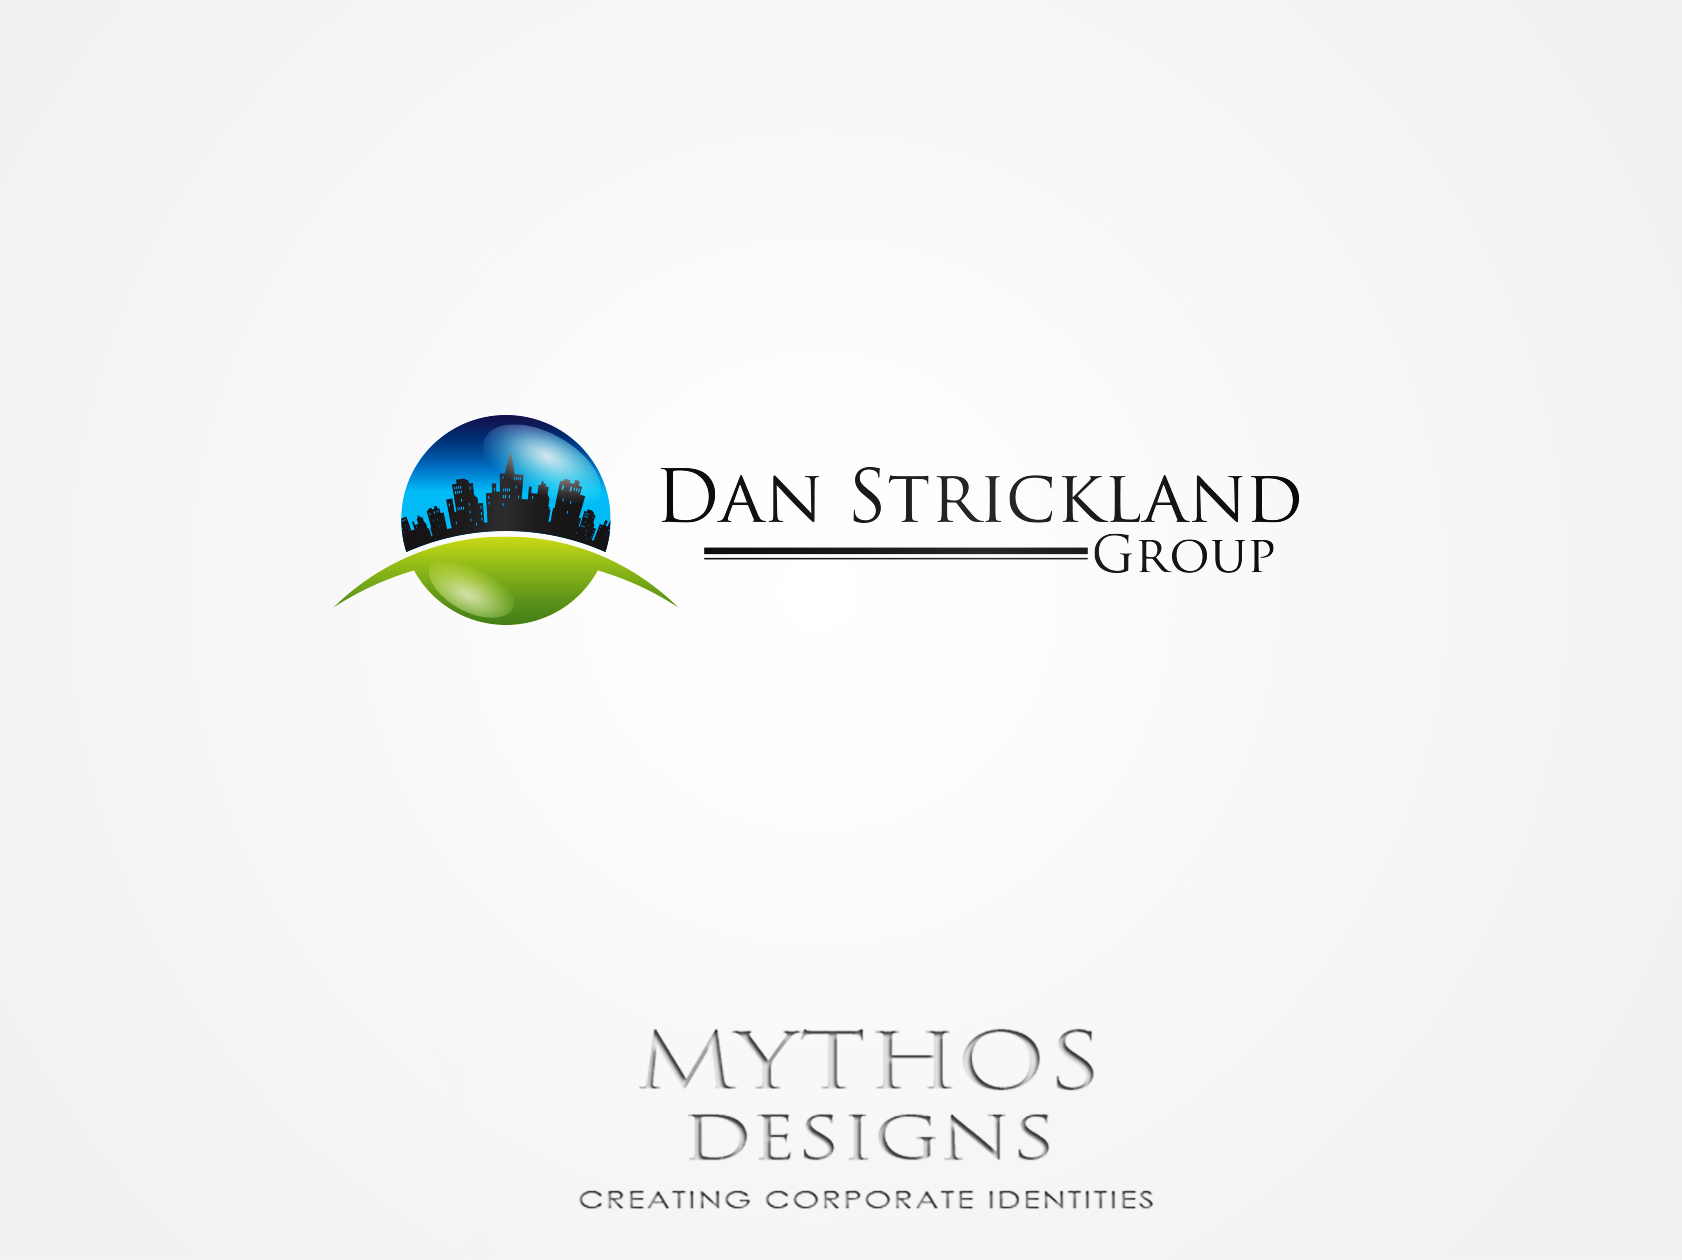 Logo Design by Mythos Designs - Entry No. 11 in the Logo Design Contest Creative Logo Design for The Dan Strickland Group.